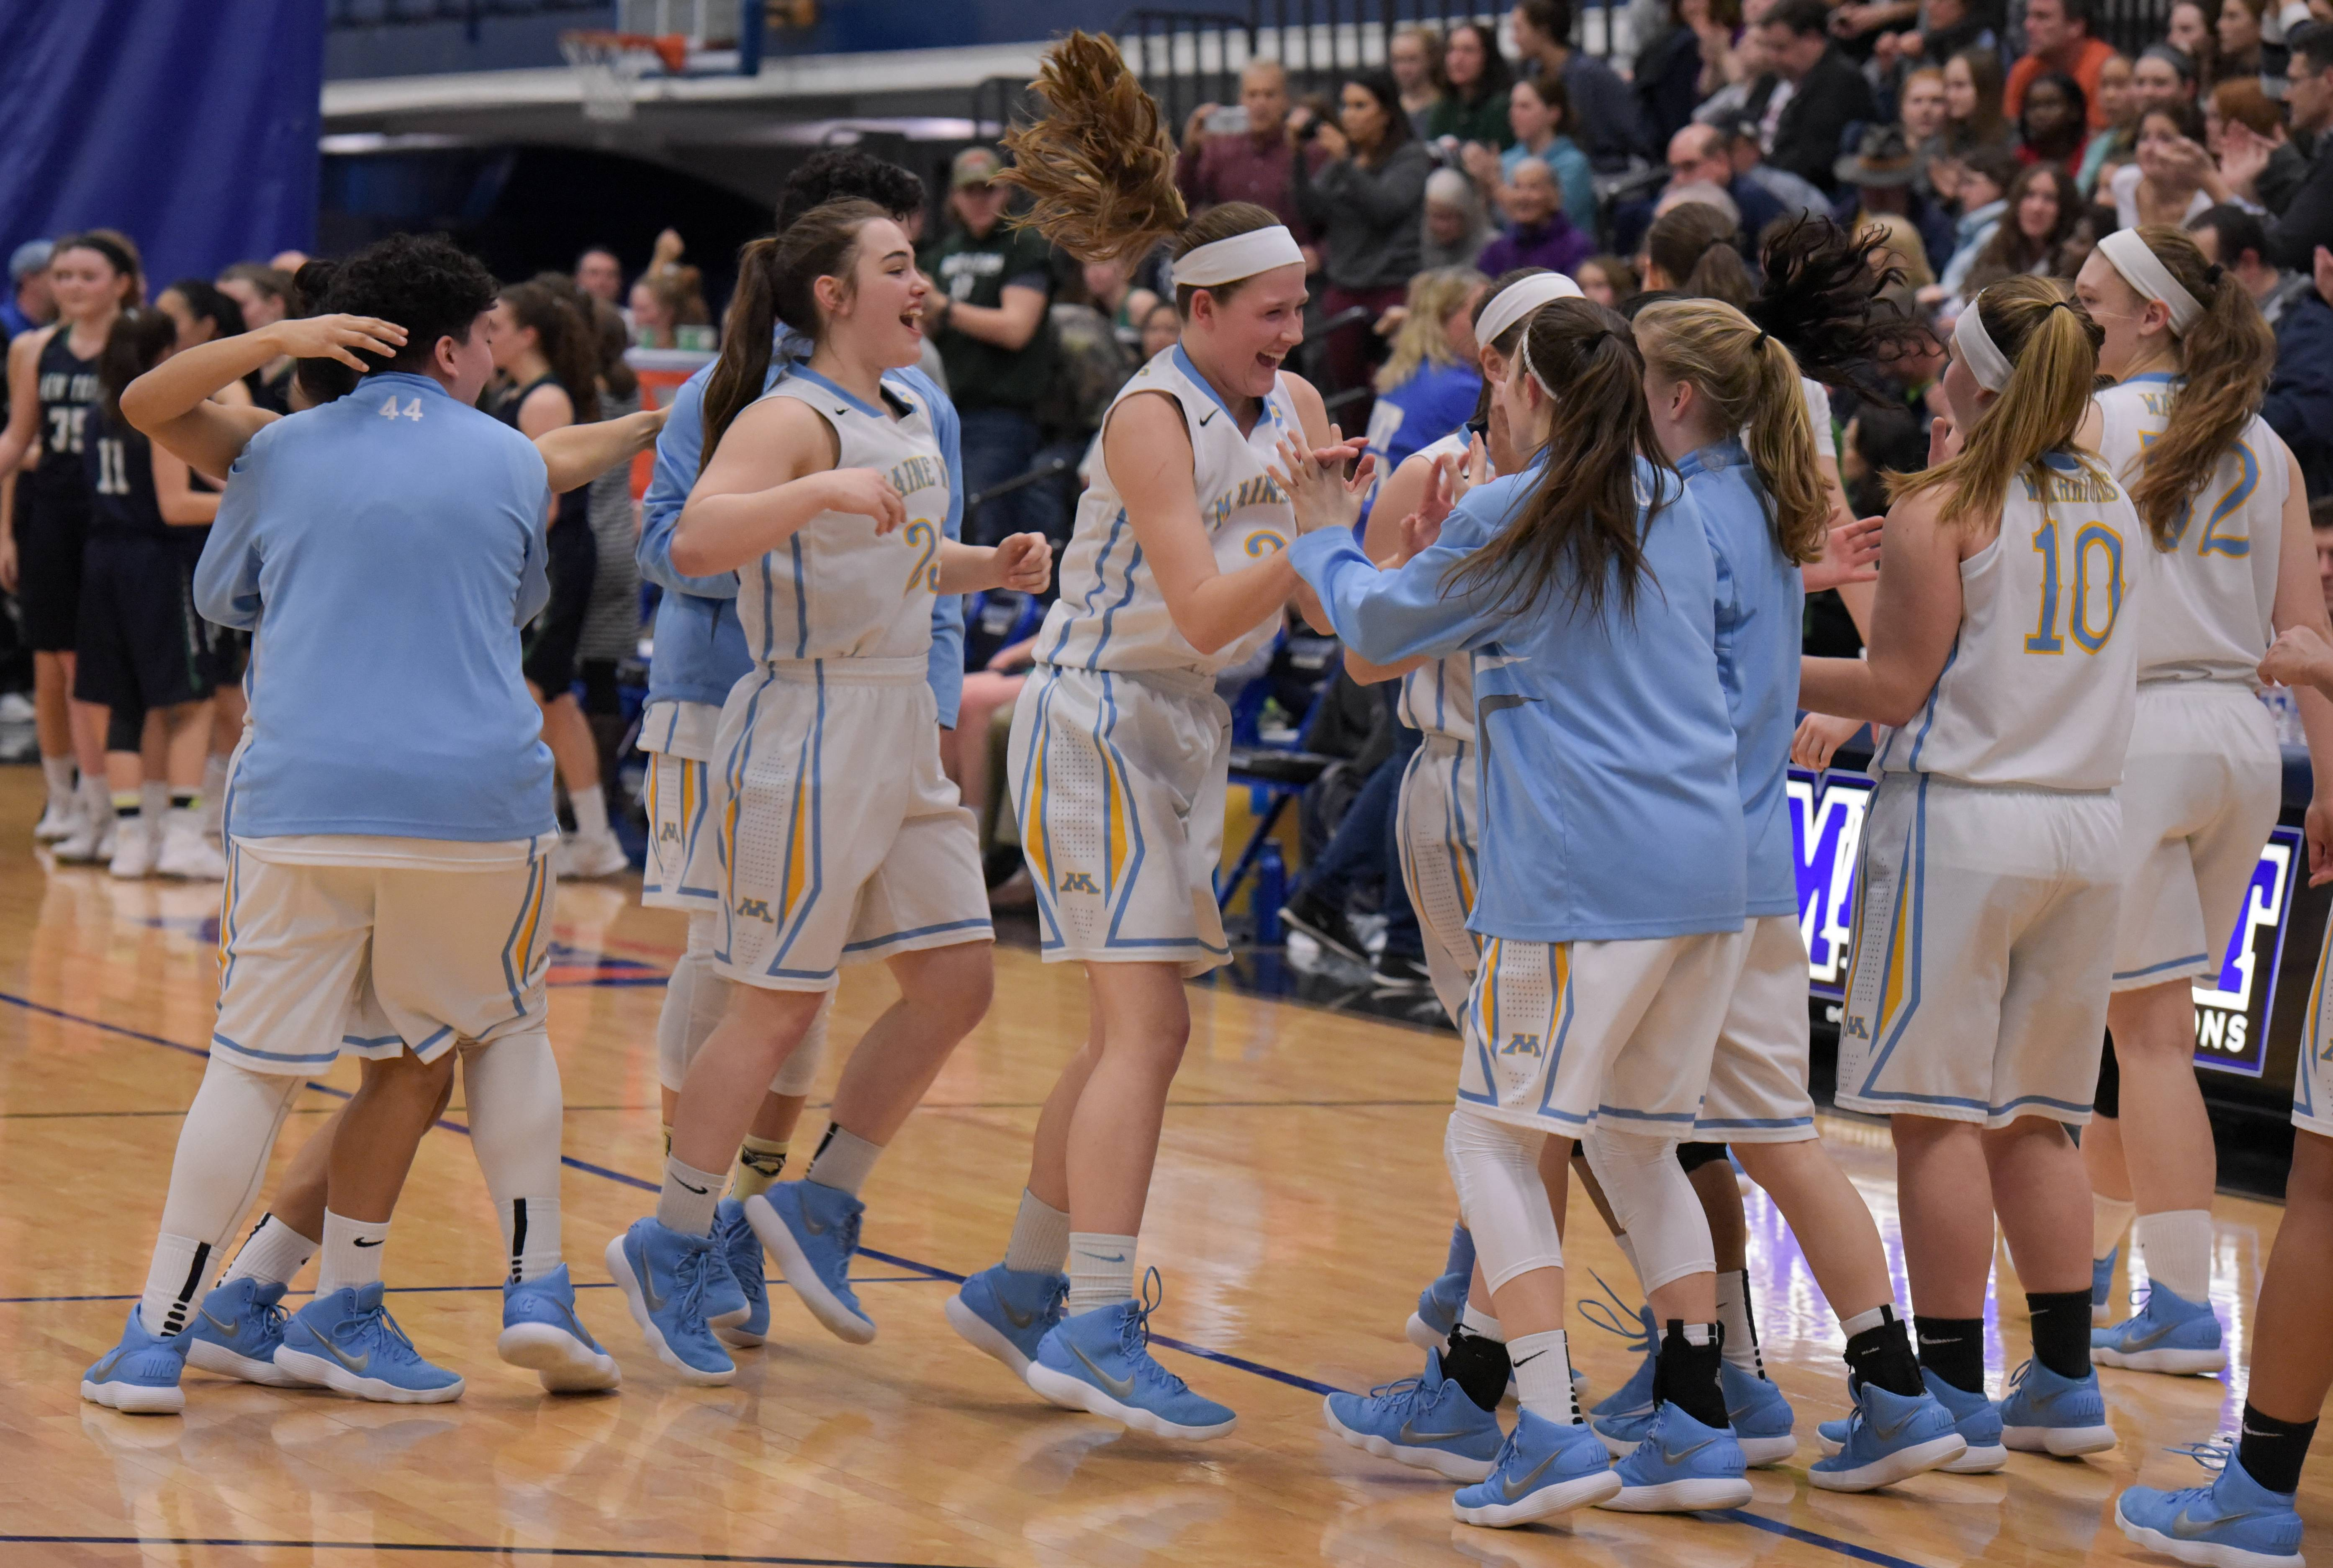 Maine West's girls basketball team celebrates its 52-38 win over New Trier during the Maine East sectional semifinal on Monday.